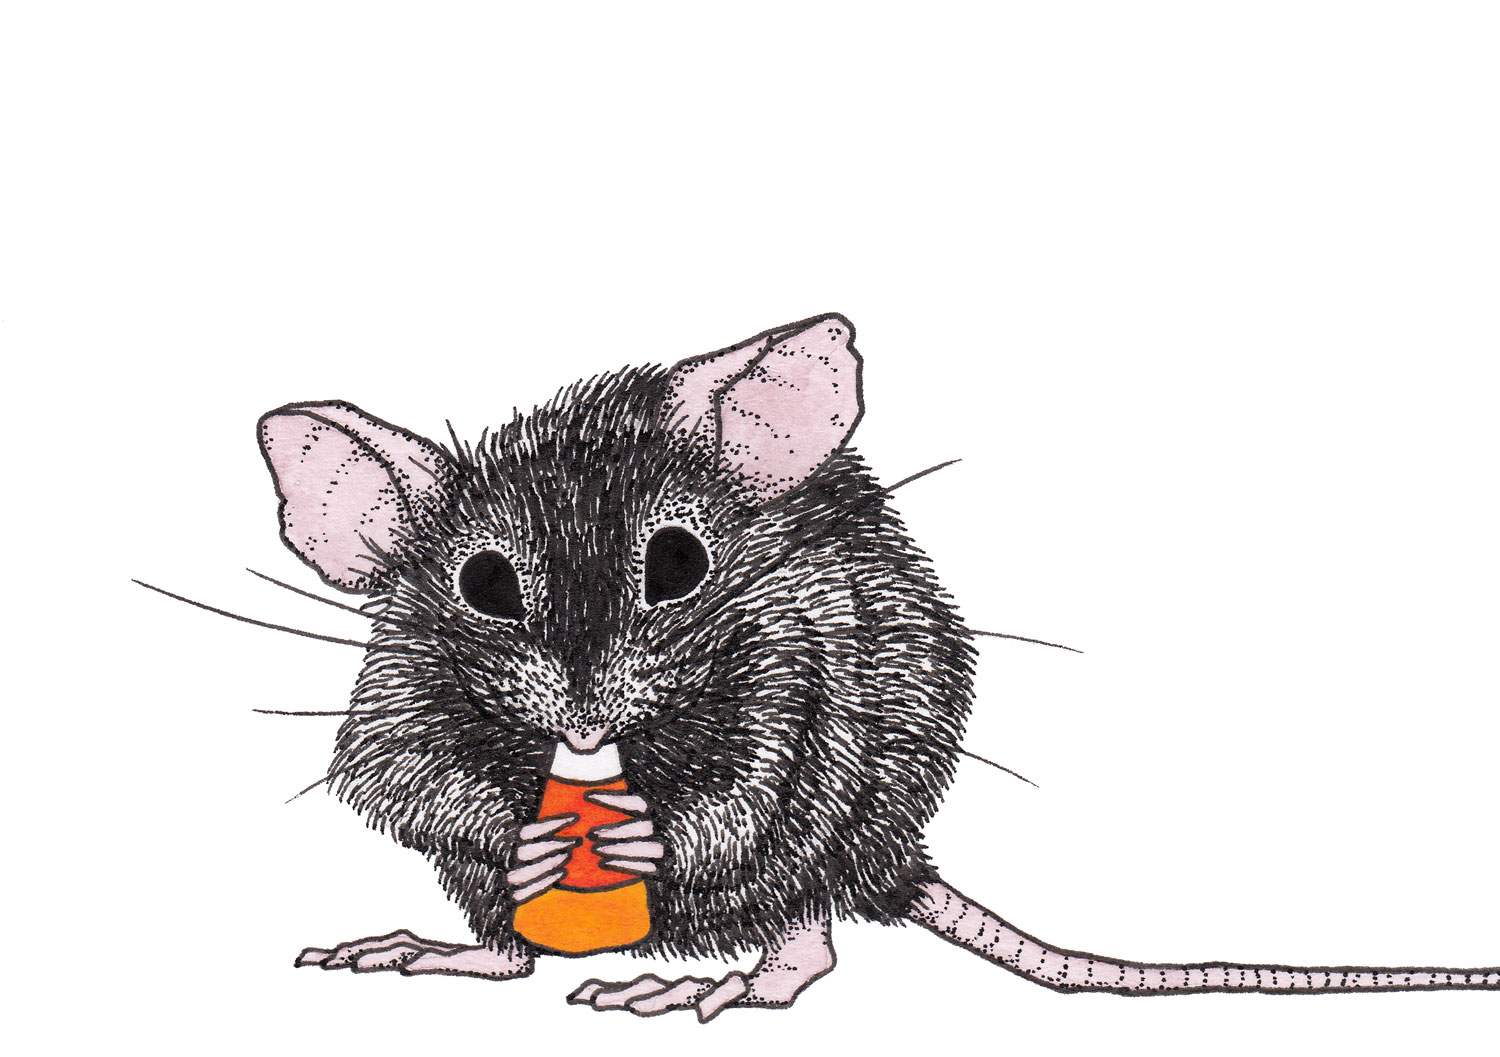 mouse-candy-corn-illustration-matthew-woods.jpg